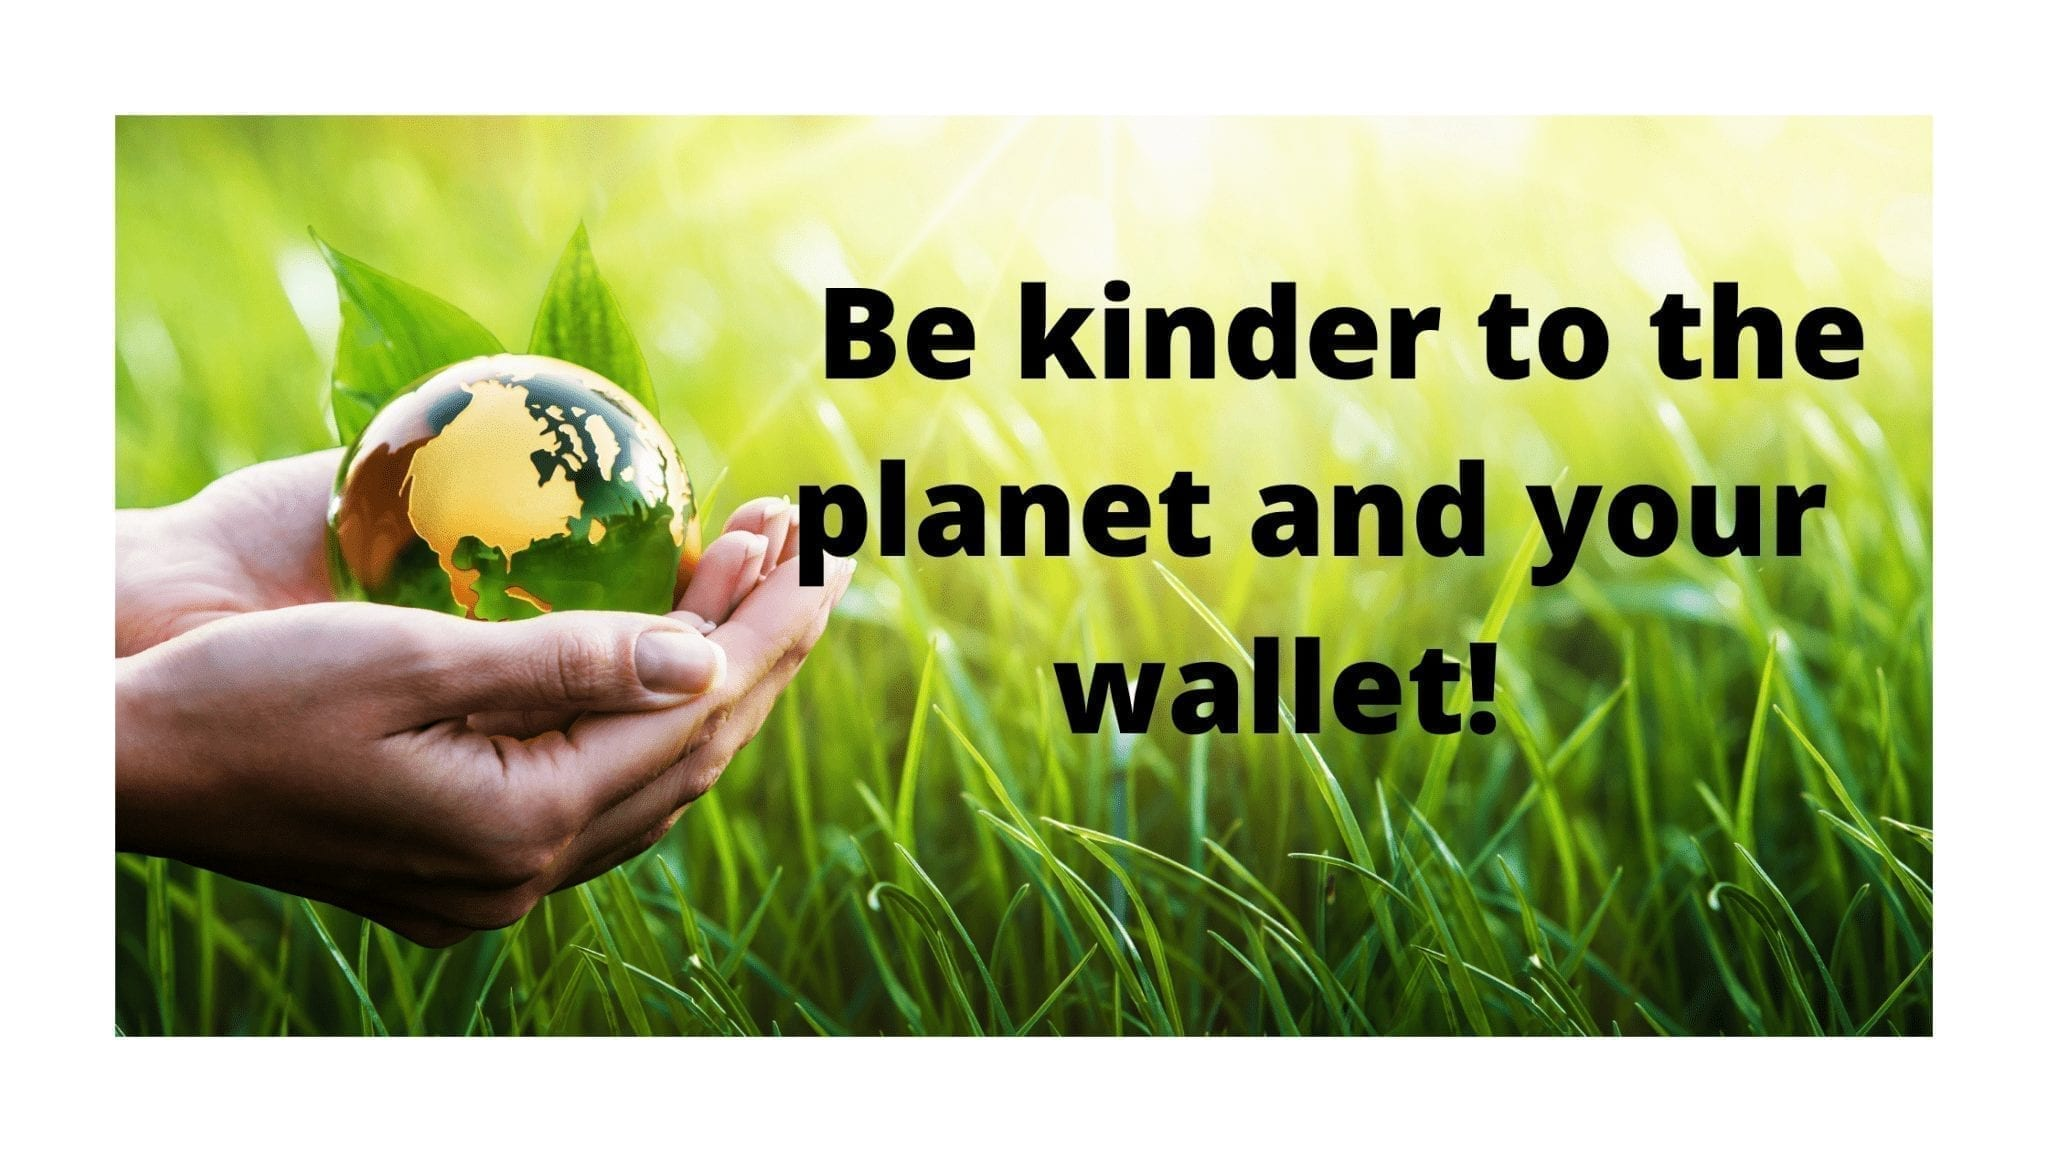 Be kinder to the planet and your wallet!